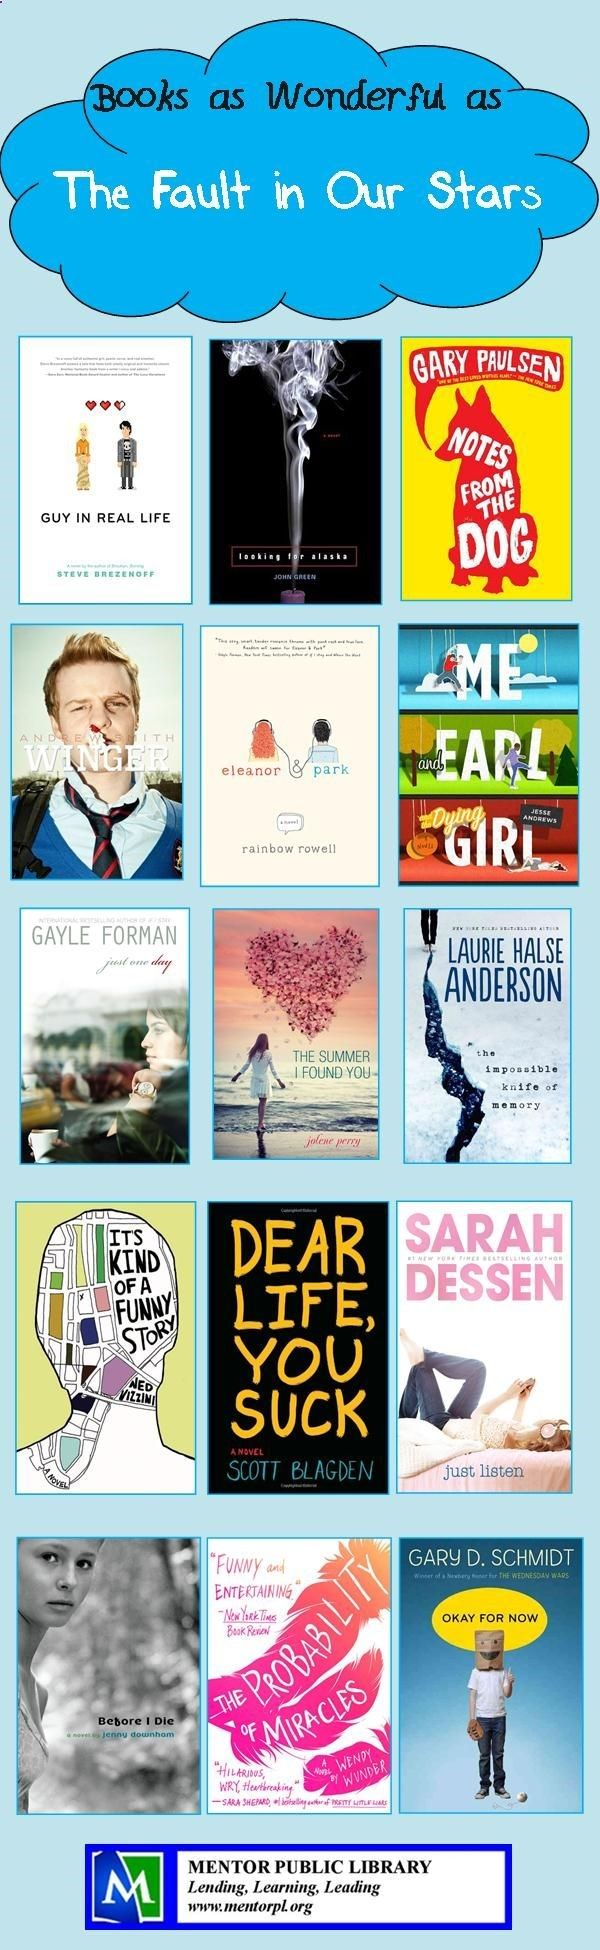 Books as Wonderful as the Fault in our Stars